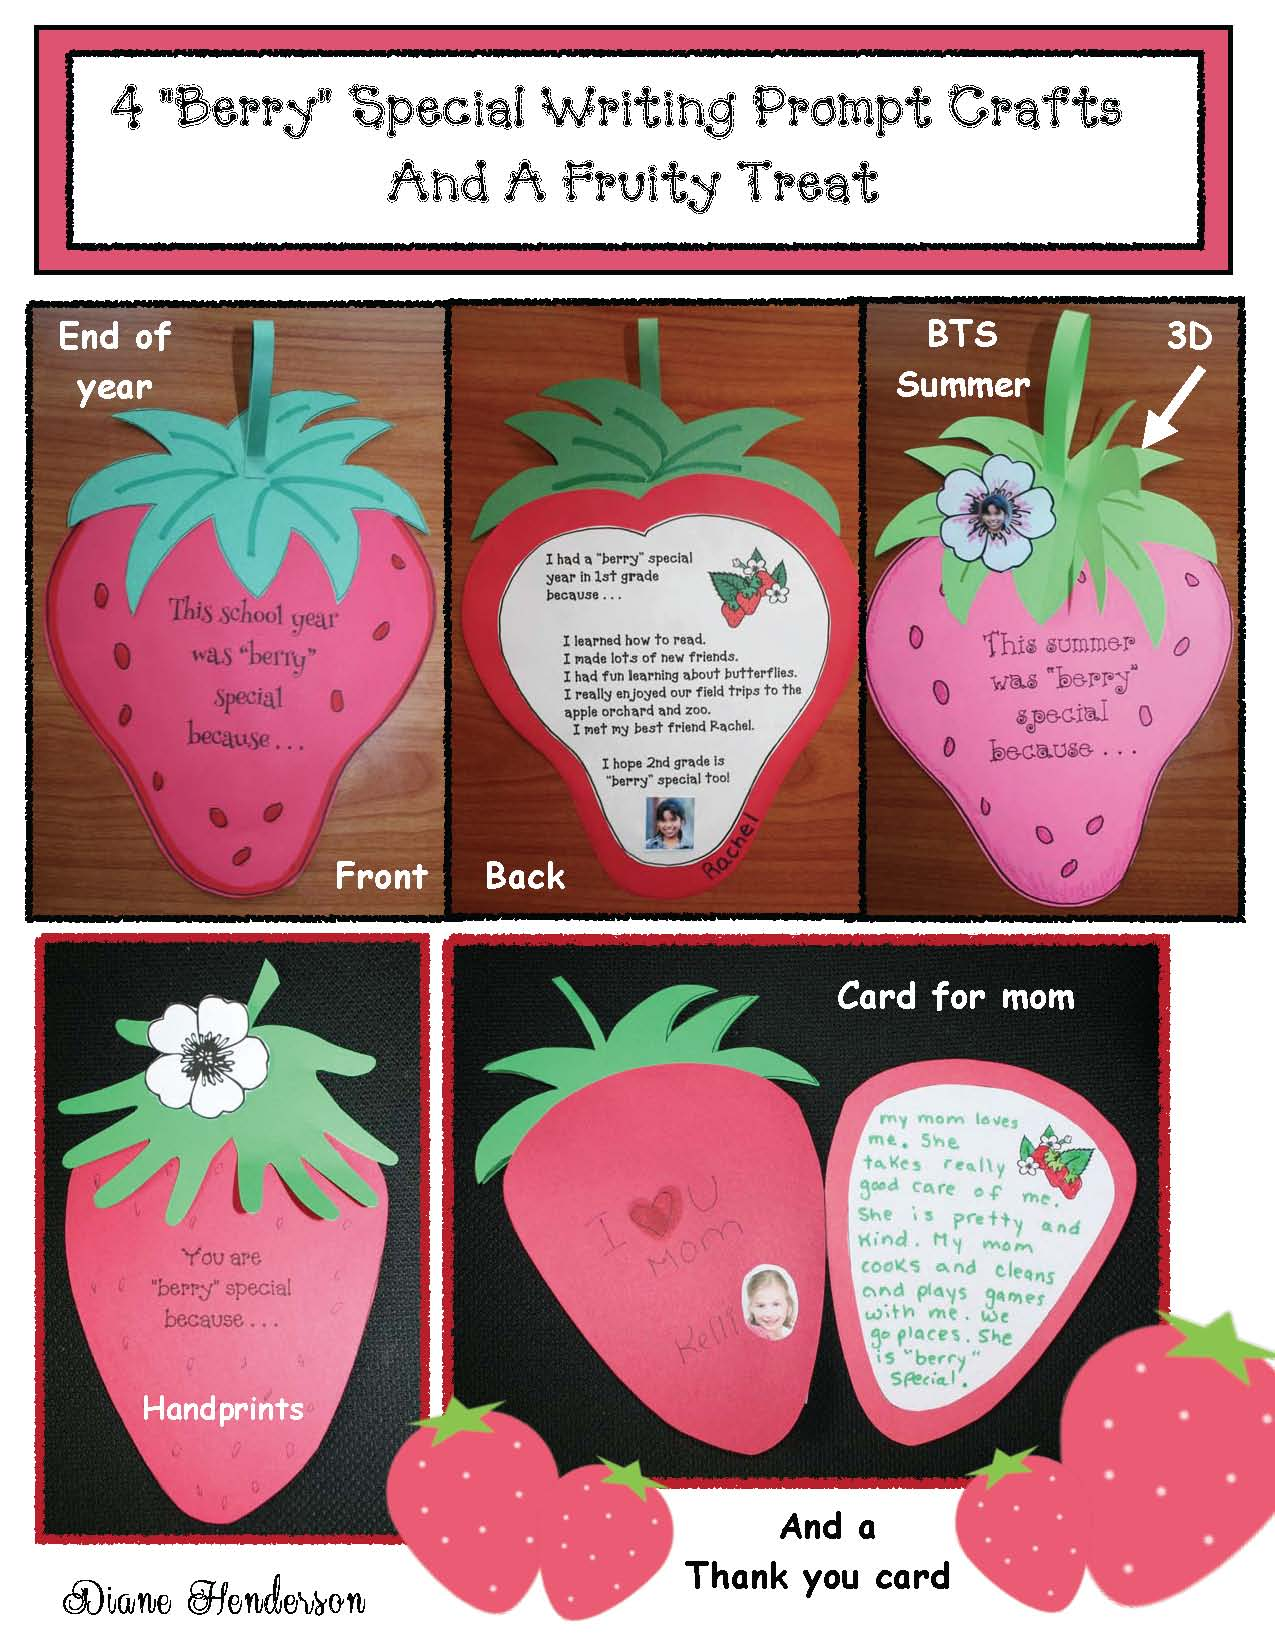 moithers day cards, mothers day crafts, mothers day activities, mothers day writing prompts, end of the year activities, frog crafts, strawberry crafts, ladybug crafts, back to school activities,